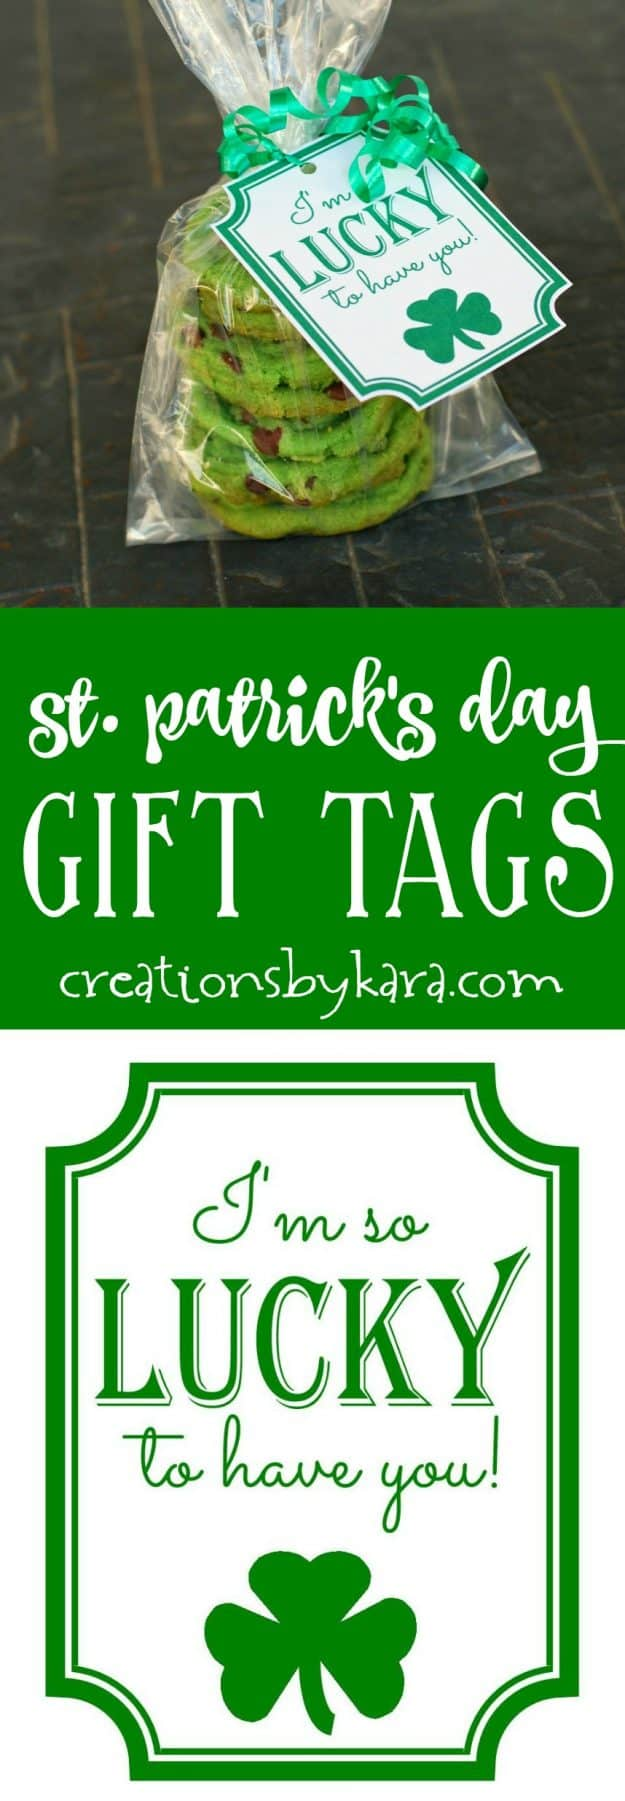 St. Patrick's Day Gift Tags - free printable gift tags for St. Patricks Day.